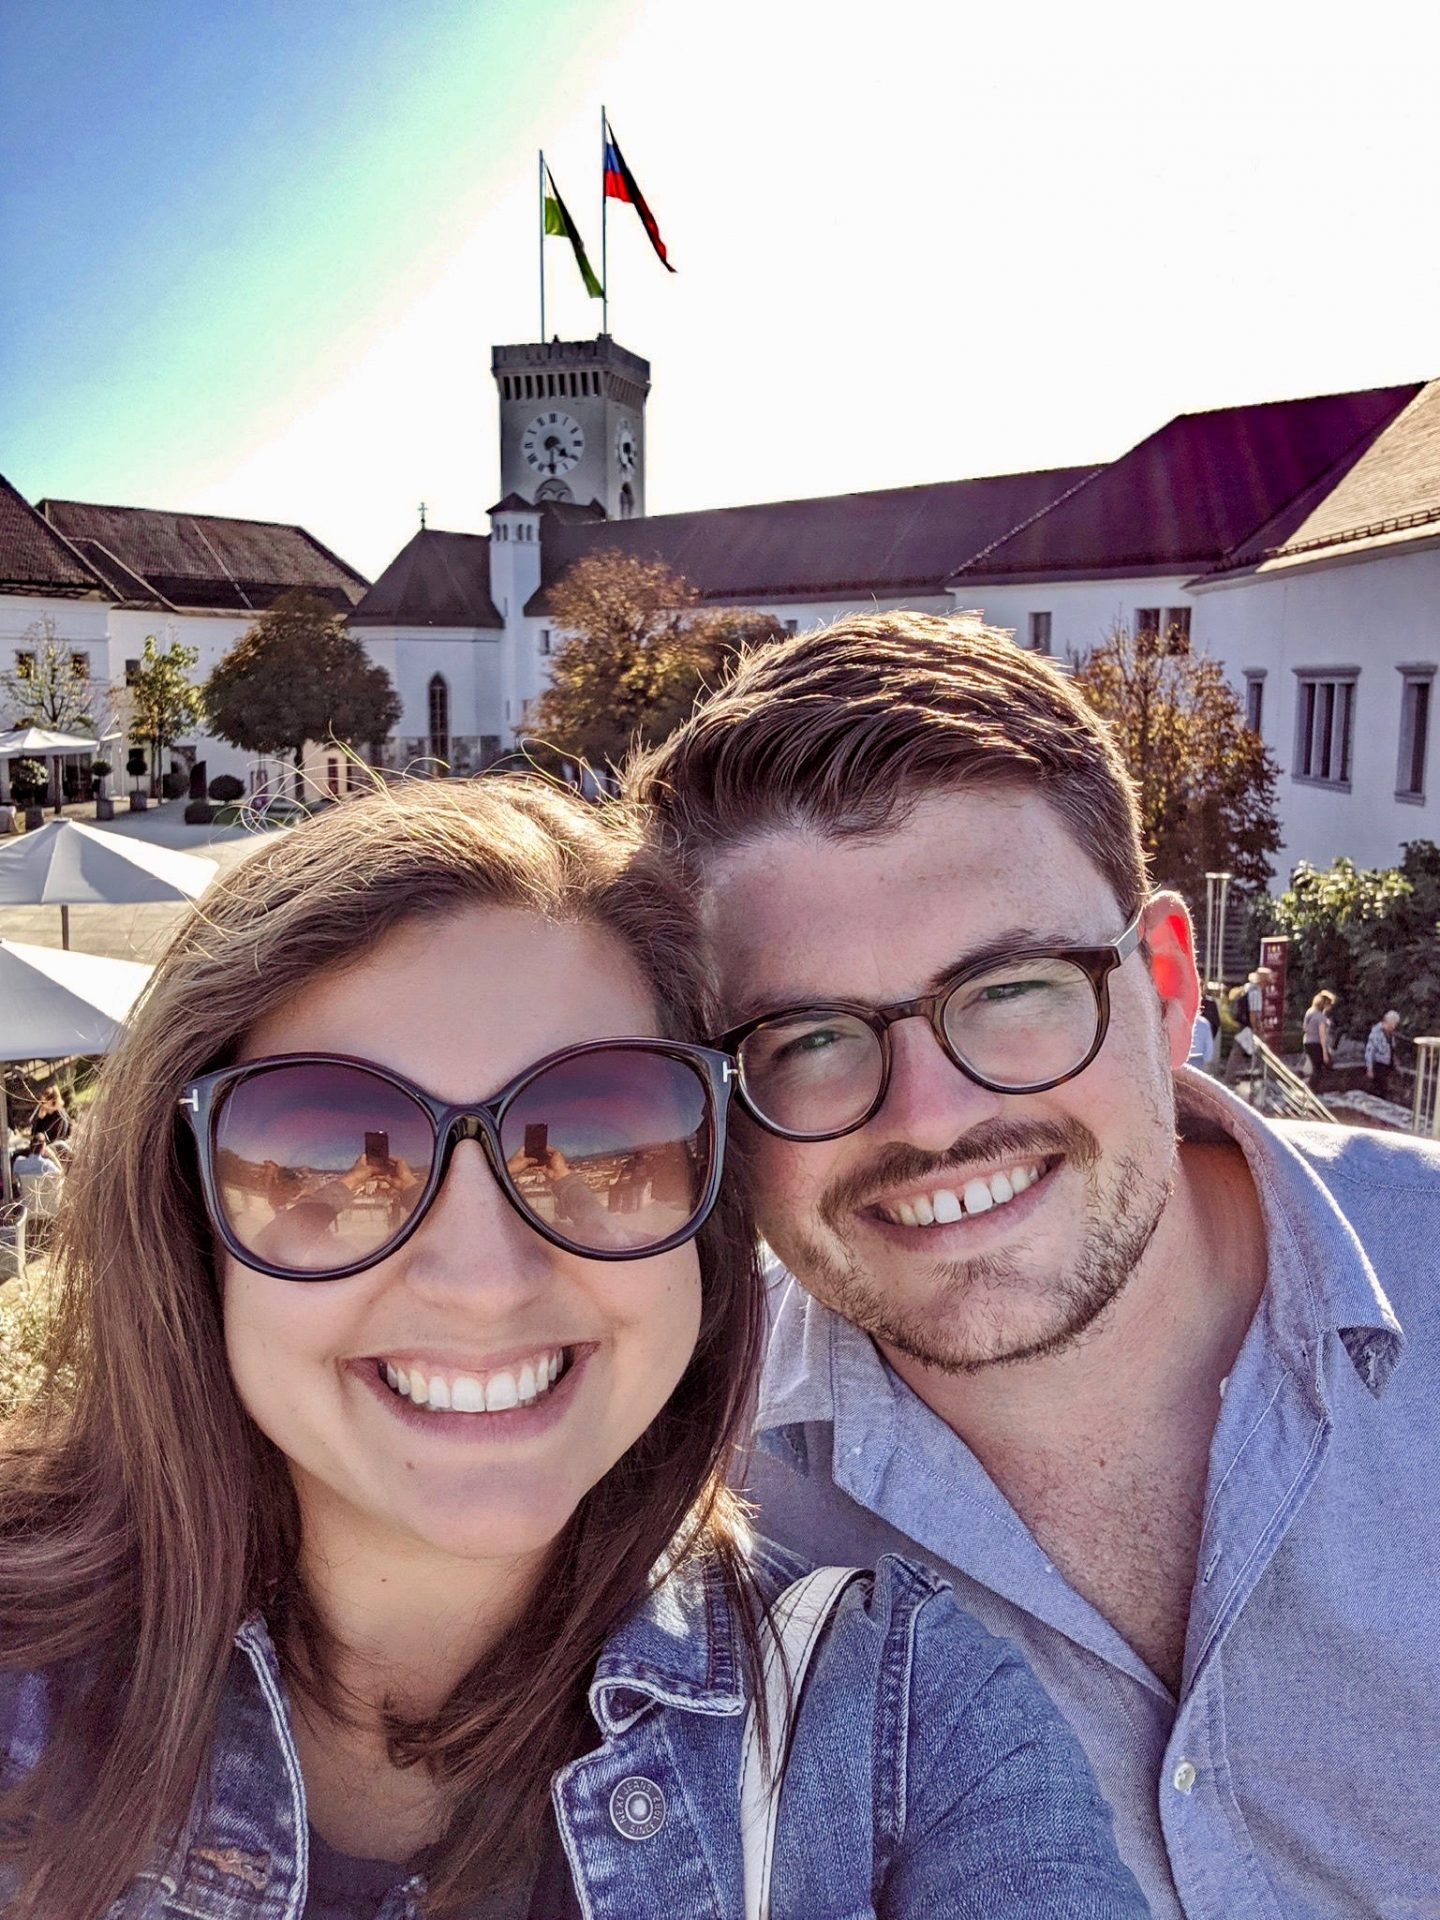 24 hours in Ljubljana food & wine: A selfie of man and women at Ljubljana castle with the castle tower in the background, a must do if you have 24 hours in Ljubljana